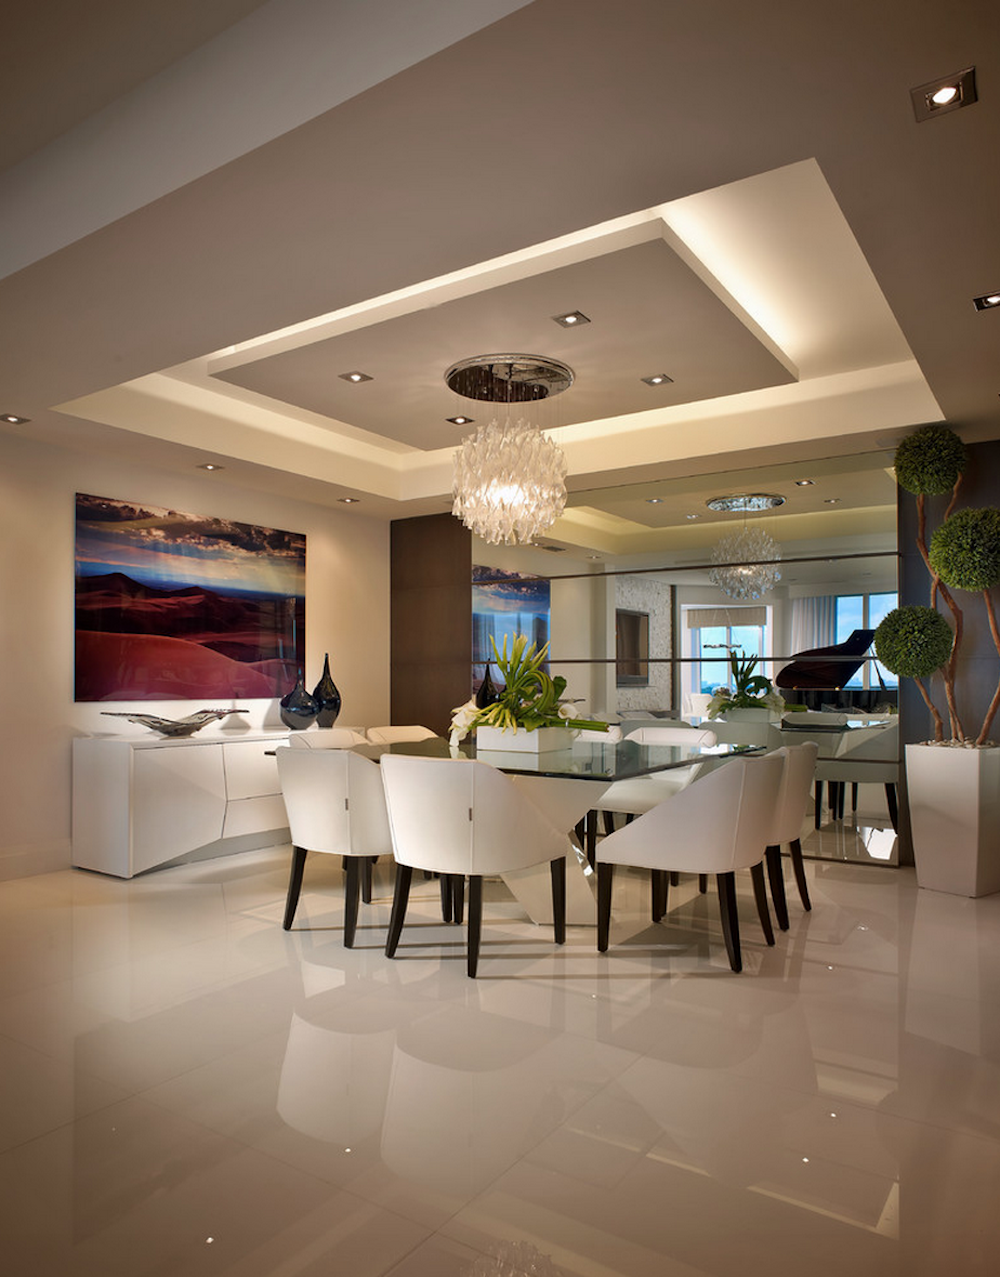 very dazzling dinning room to open living room floor plan. love